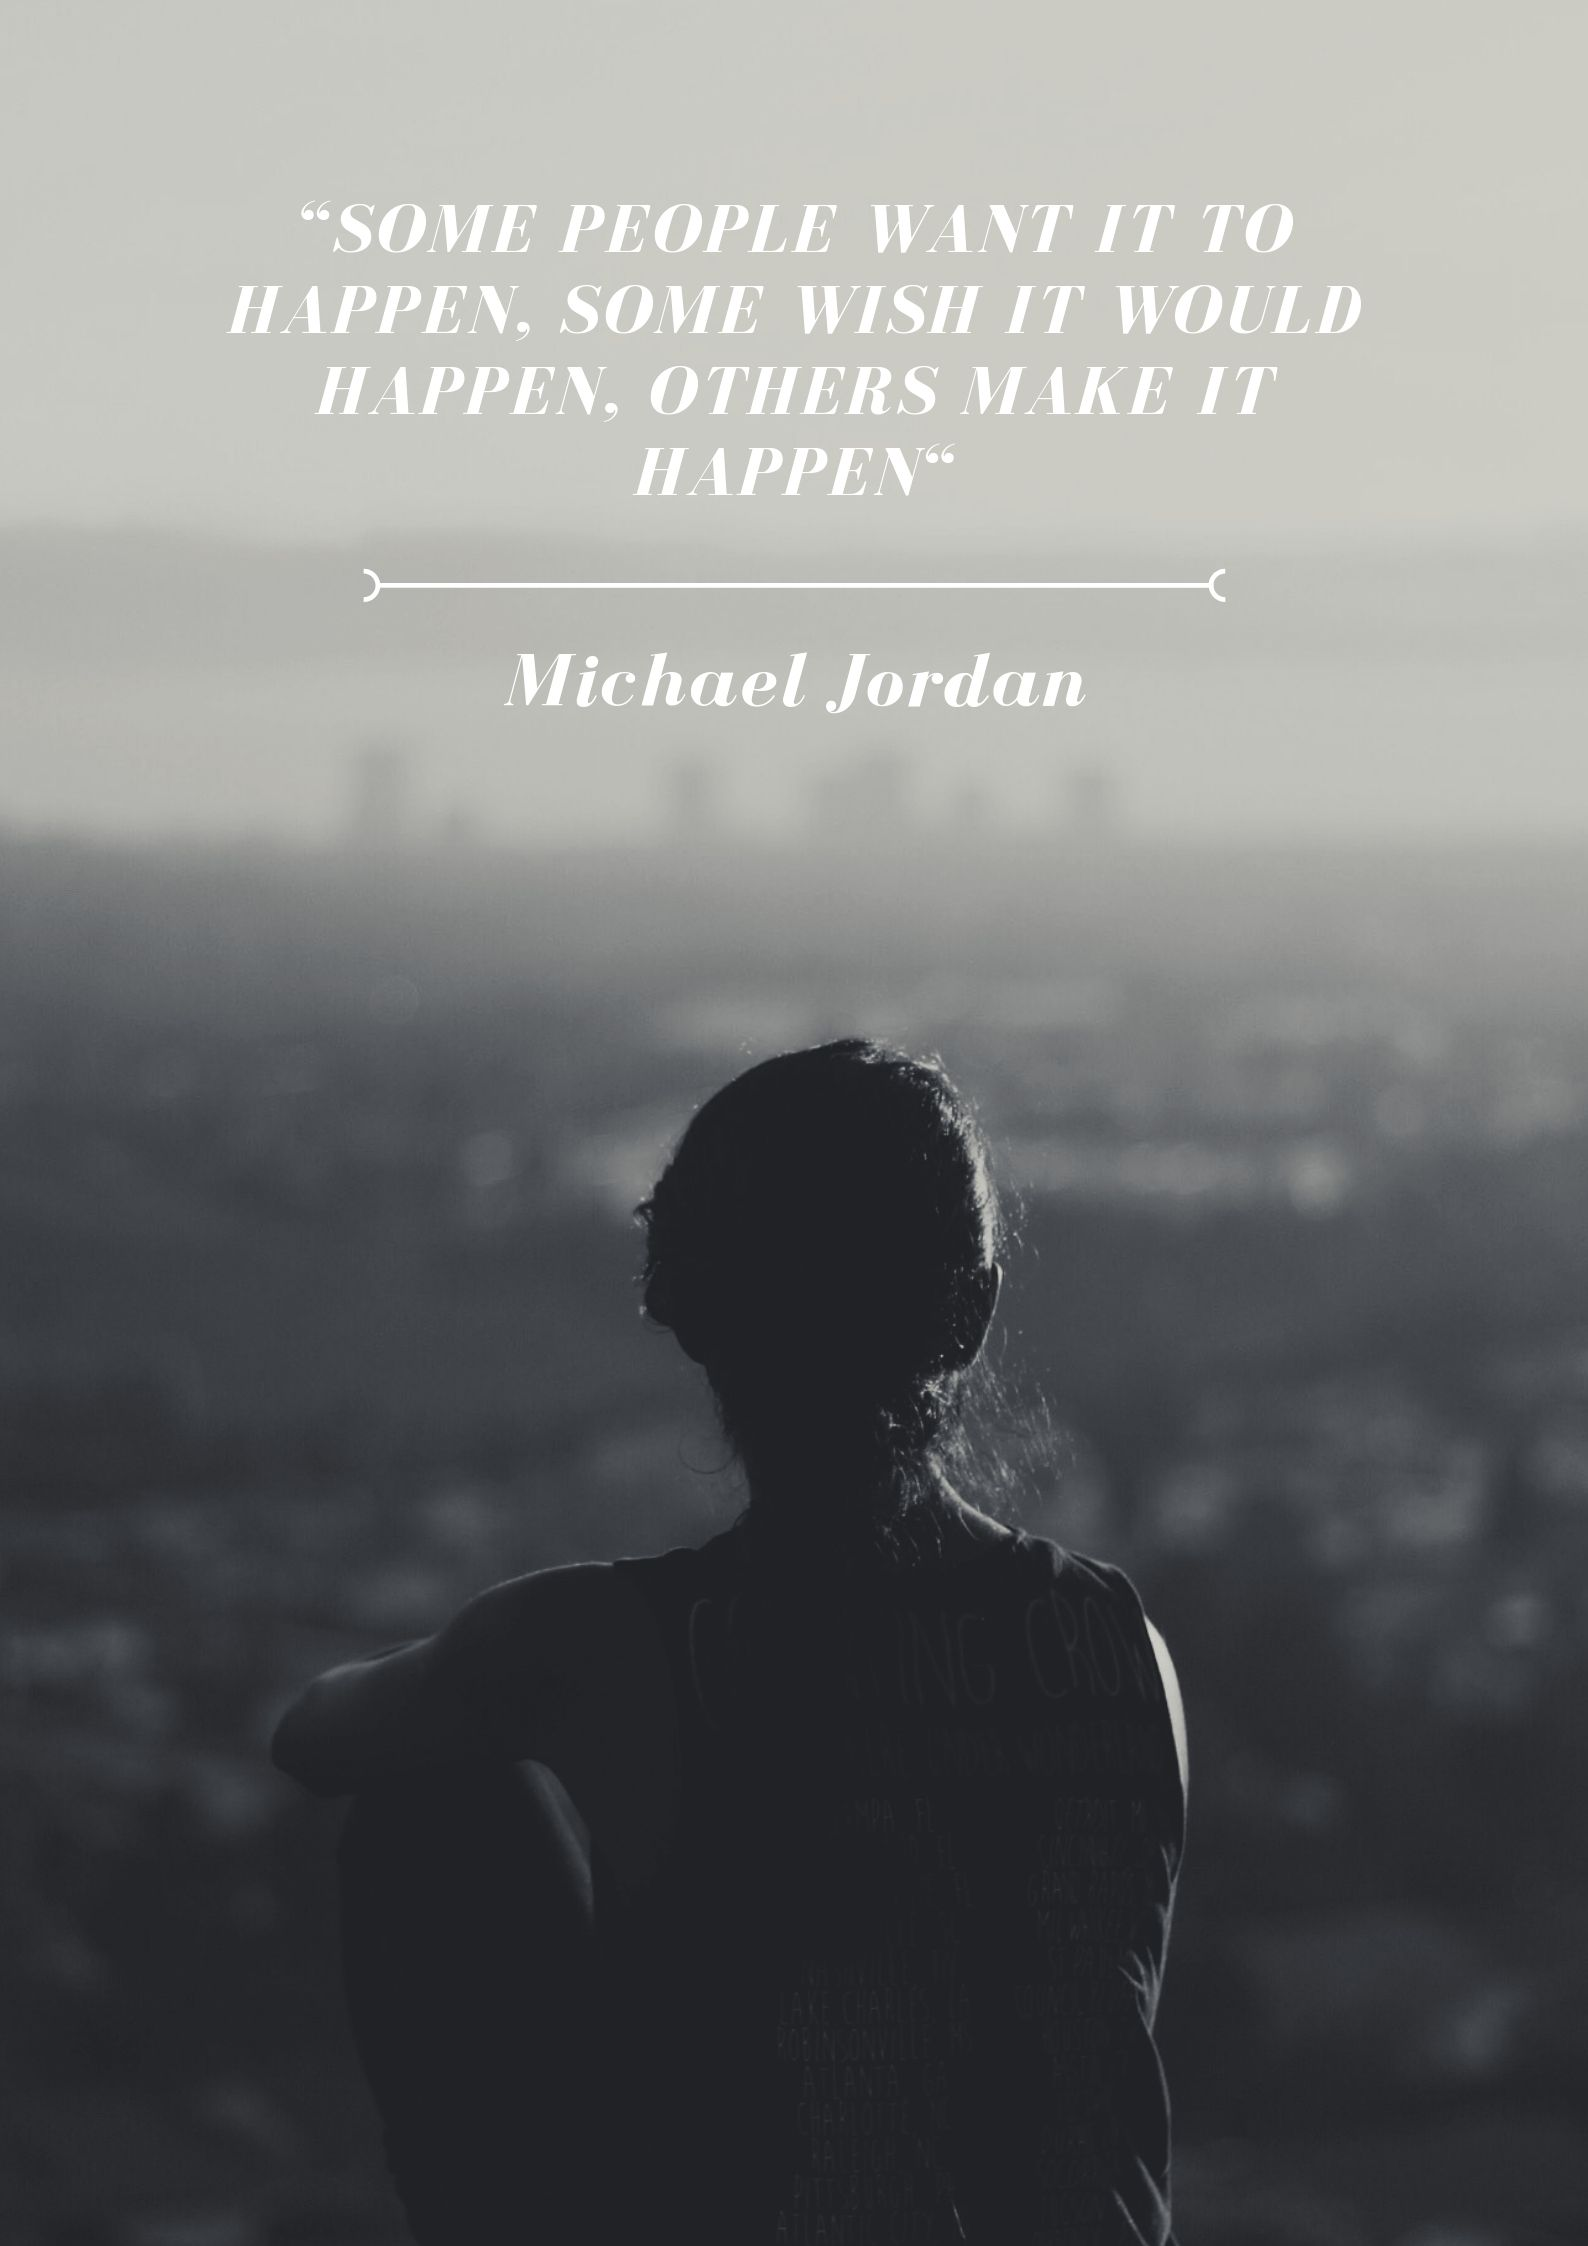 """Some people want it to happen, some wish it would happen, others make it happen"" - Michael Jordan quote (for JamesRunsFar.com).jpg"